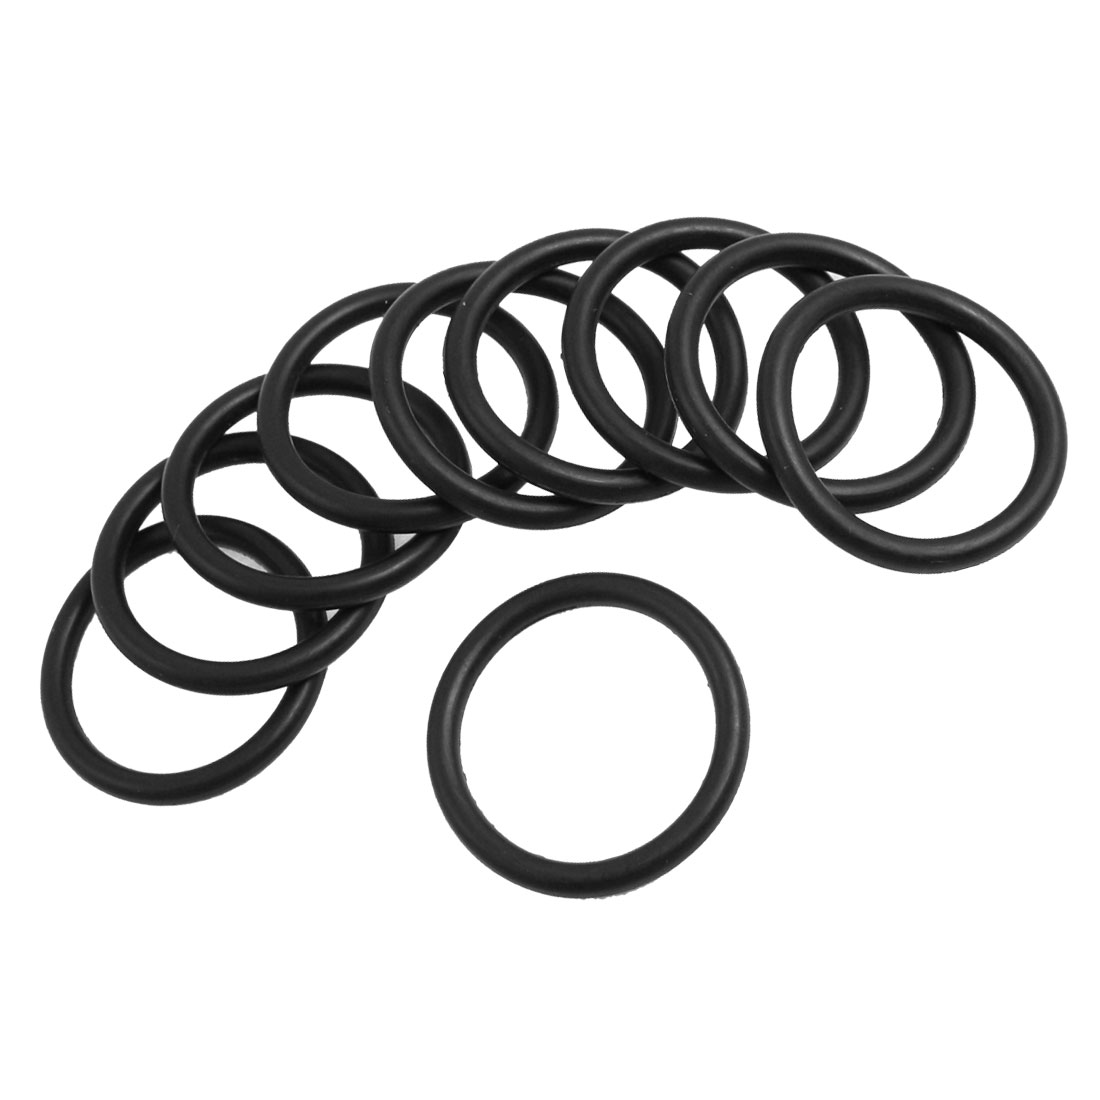 10 Pcs Oil Seal O Rings Black Nitrile Rubber 37mm OD 4mm Thickness